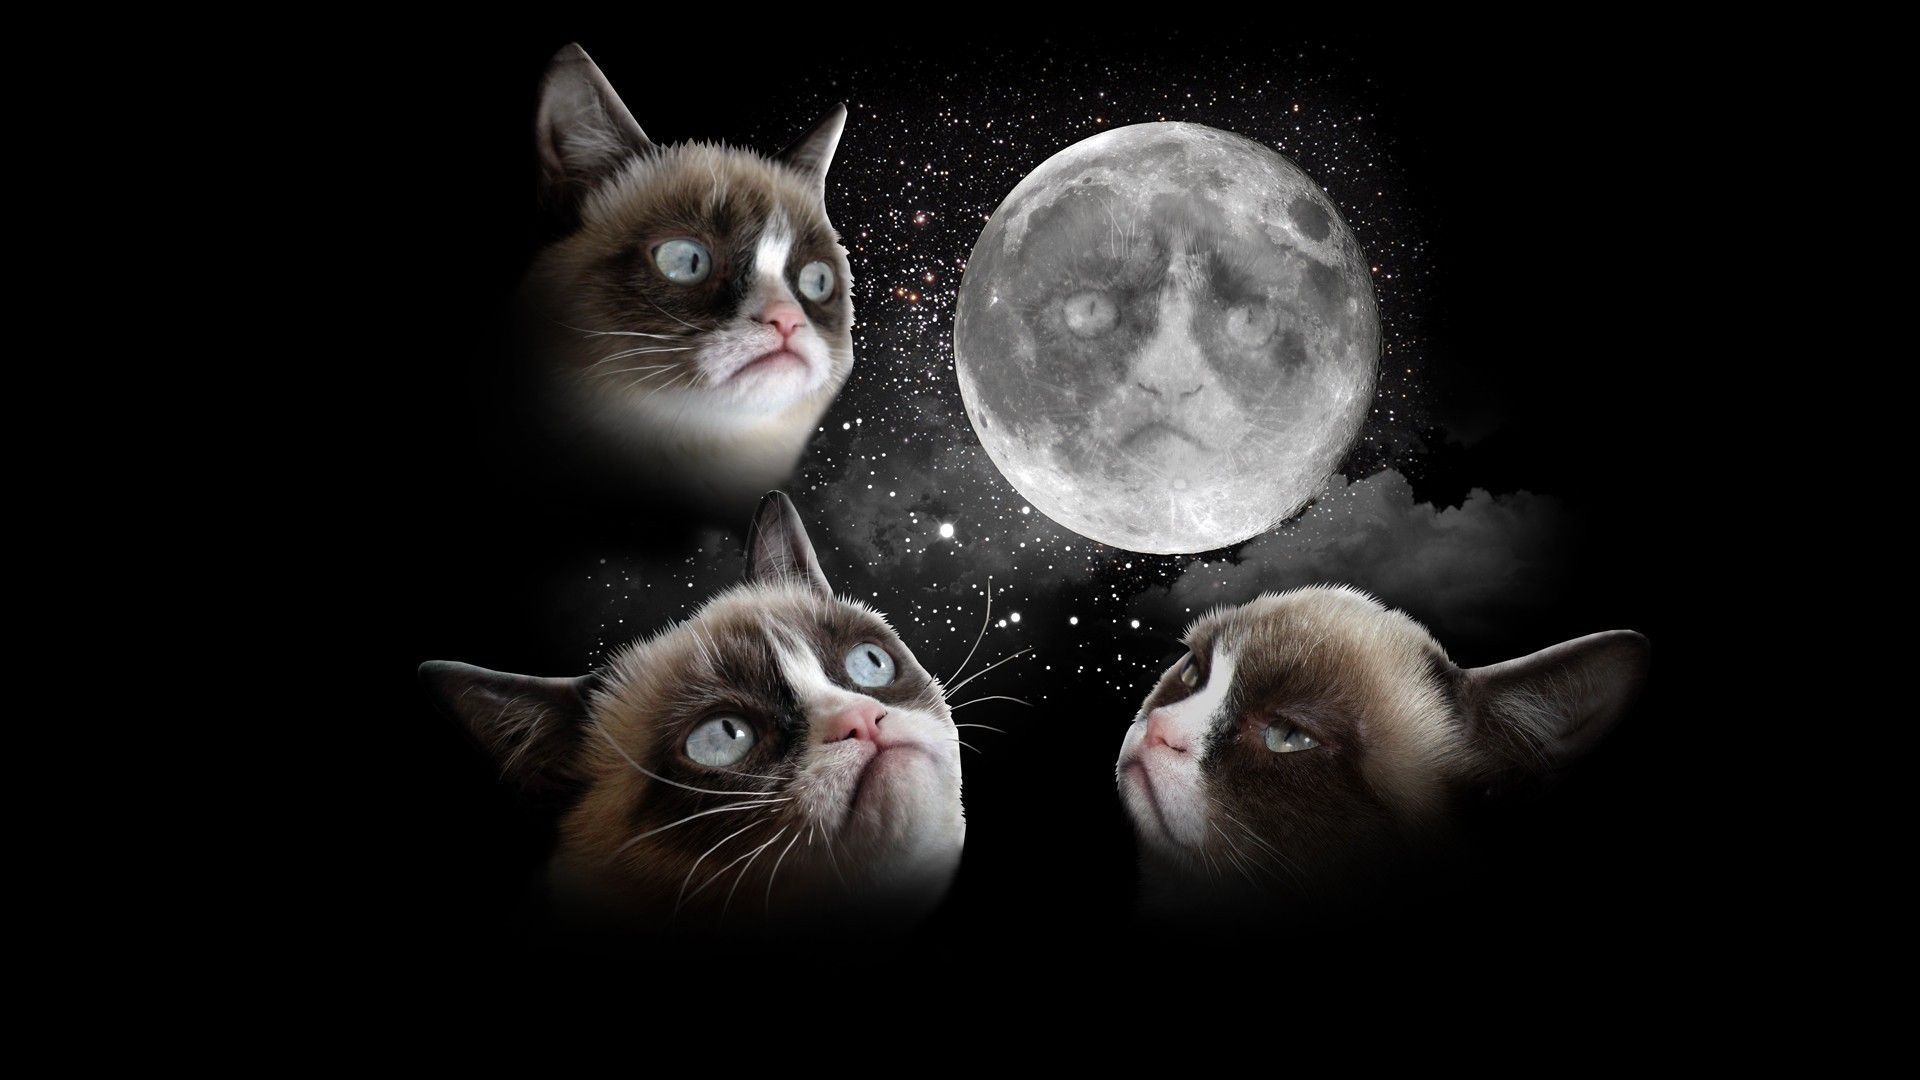 Black Grumpy Cat Pictures Wallpaper Delicious Dinners Jpg 1920x1080 Wallpapers Tumblr Christmas Memes Catpictures Grumpycat